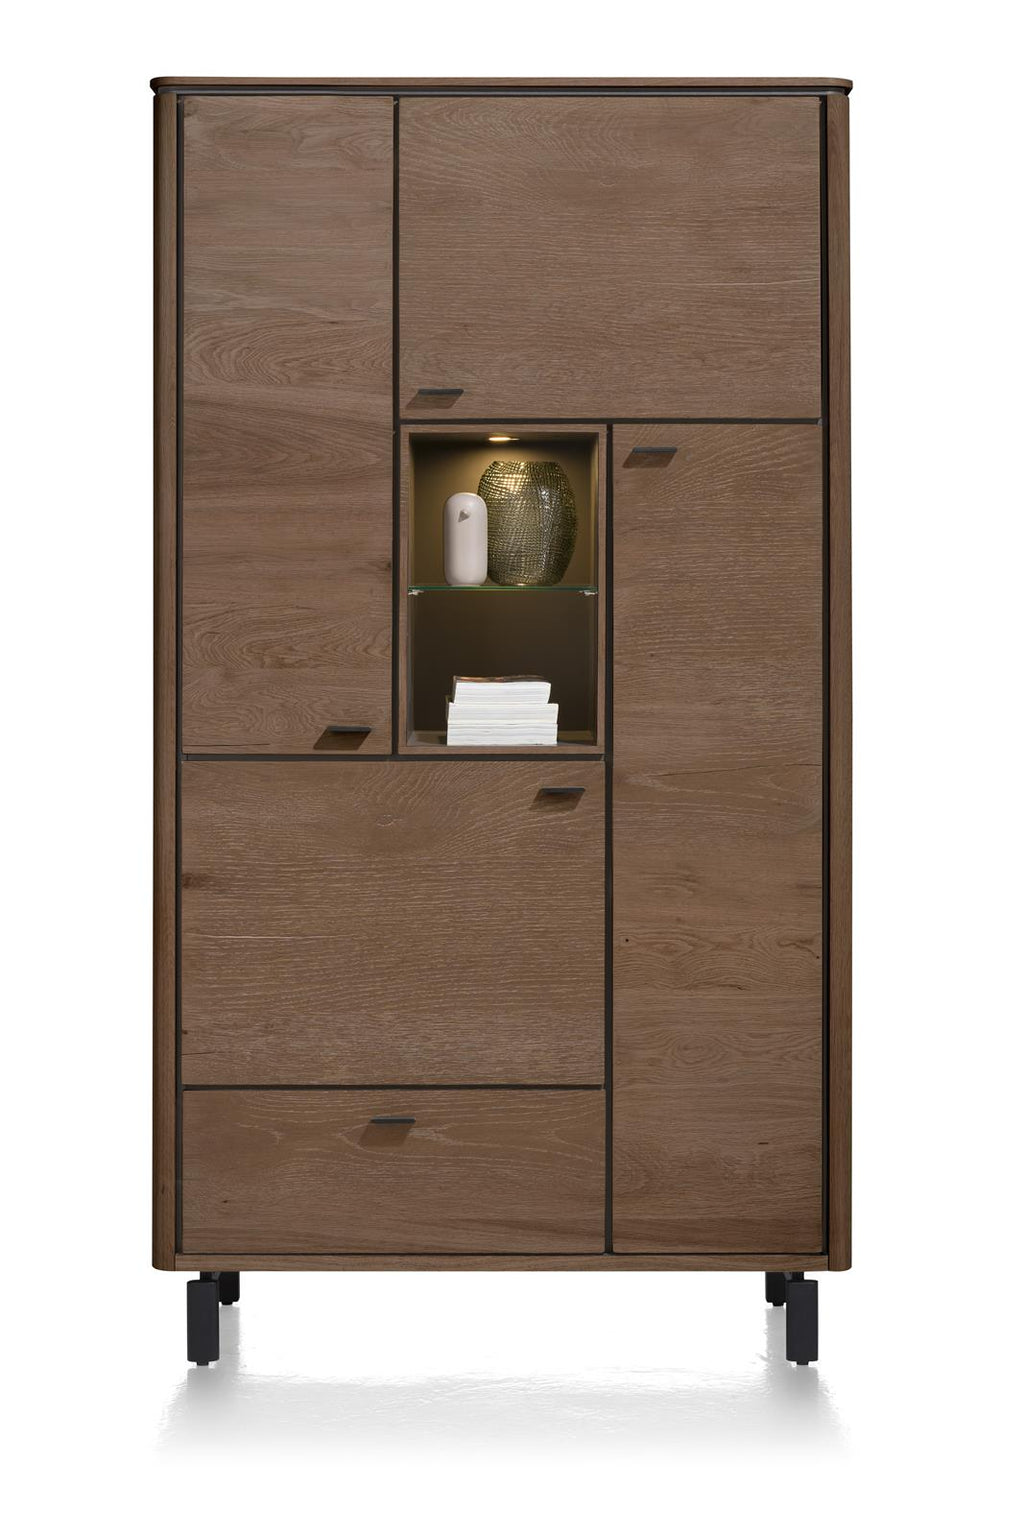 Livada Moreni Bespoke Tall Storage Cabinet in Four Colours